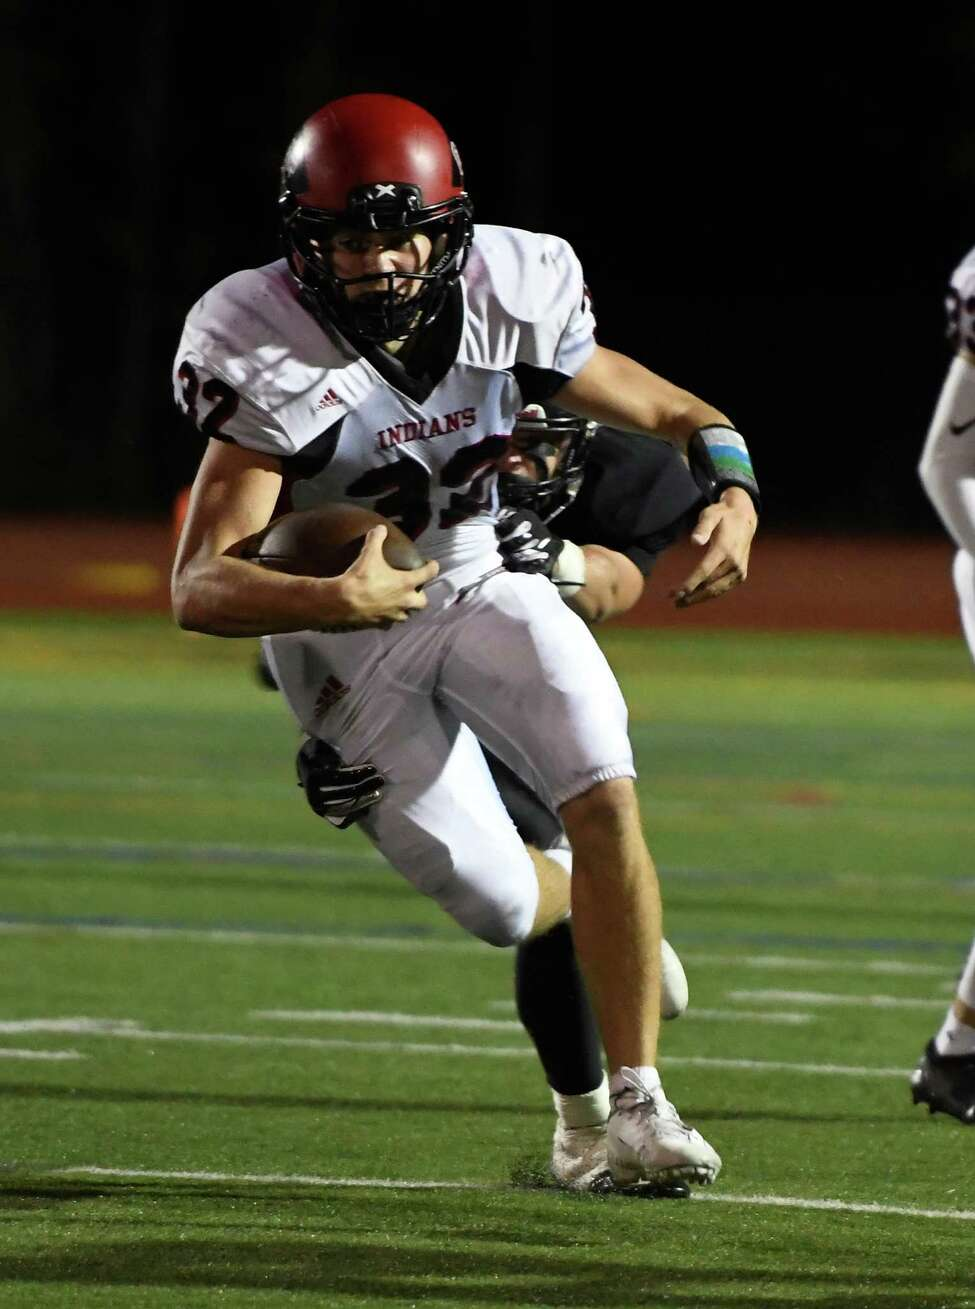 Glens Falls running back Griffin Woodell runs through a tackle by Schuylerville defensive lineman Tyler Bowen during a game Friday, Sept. 13, 2019, in Schuylerville, N.Y. (Jenn March, Special to the Times Union)